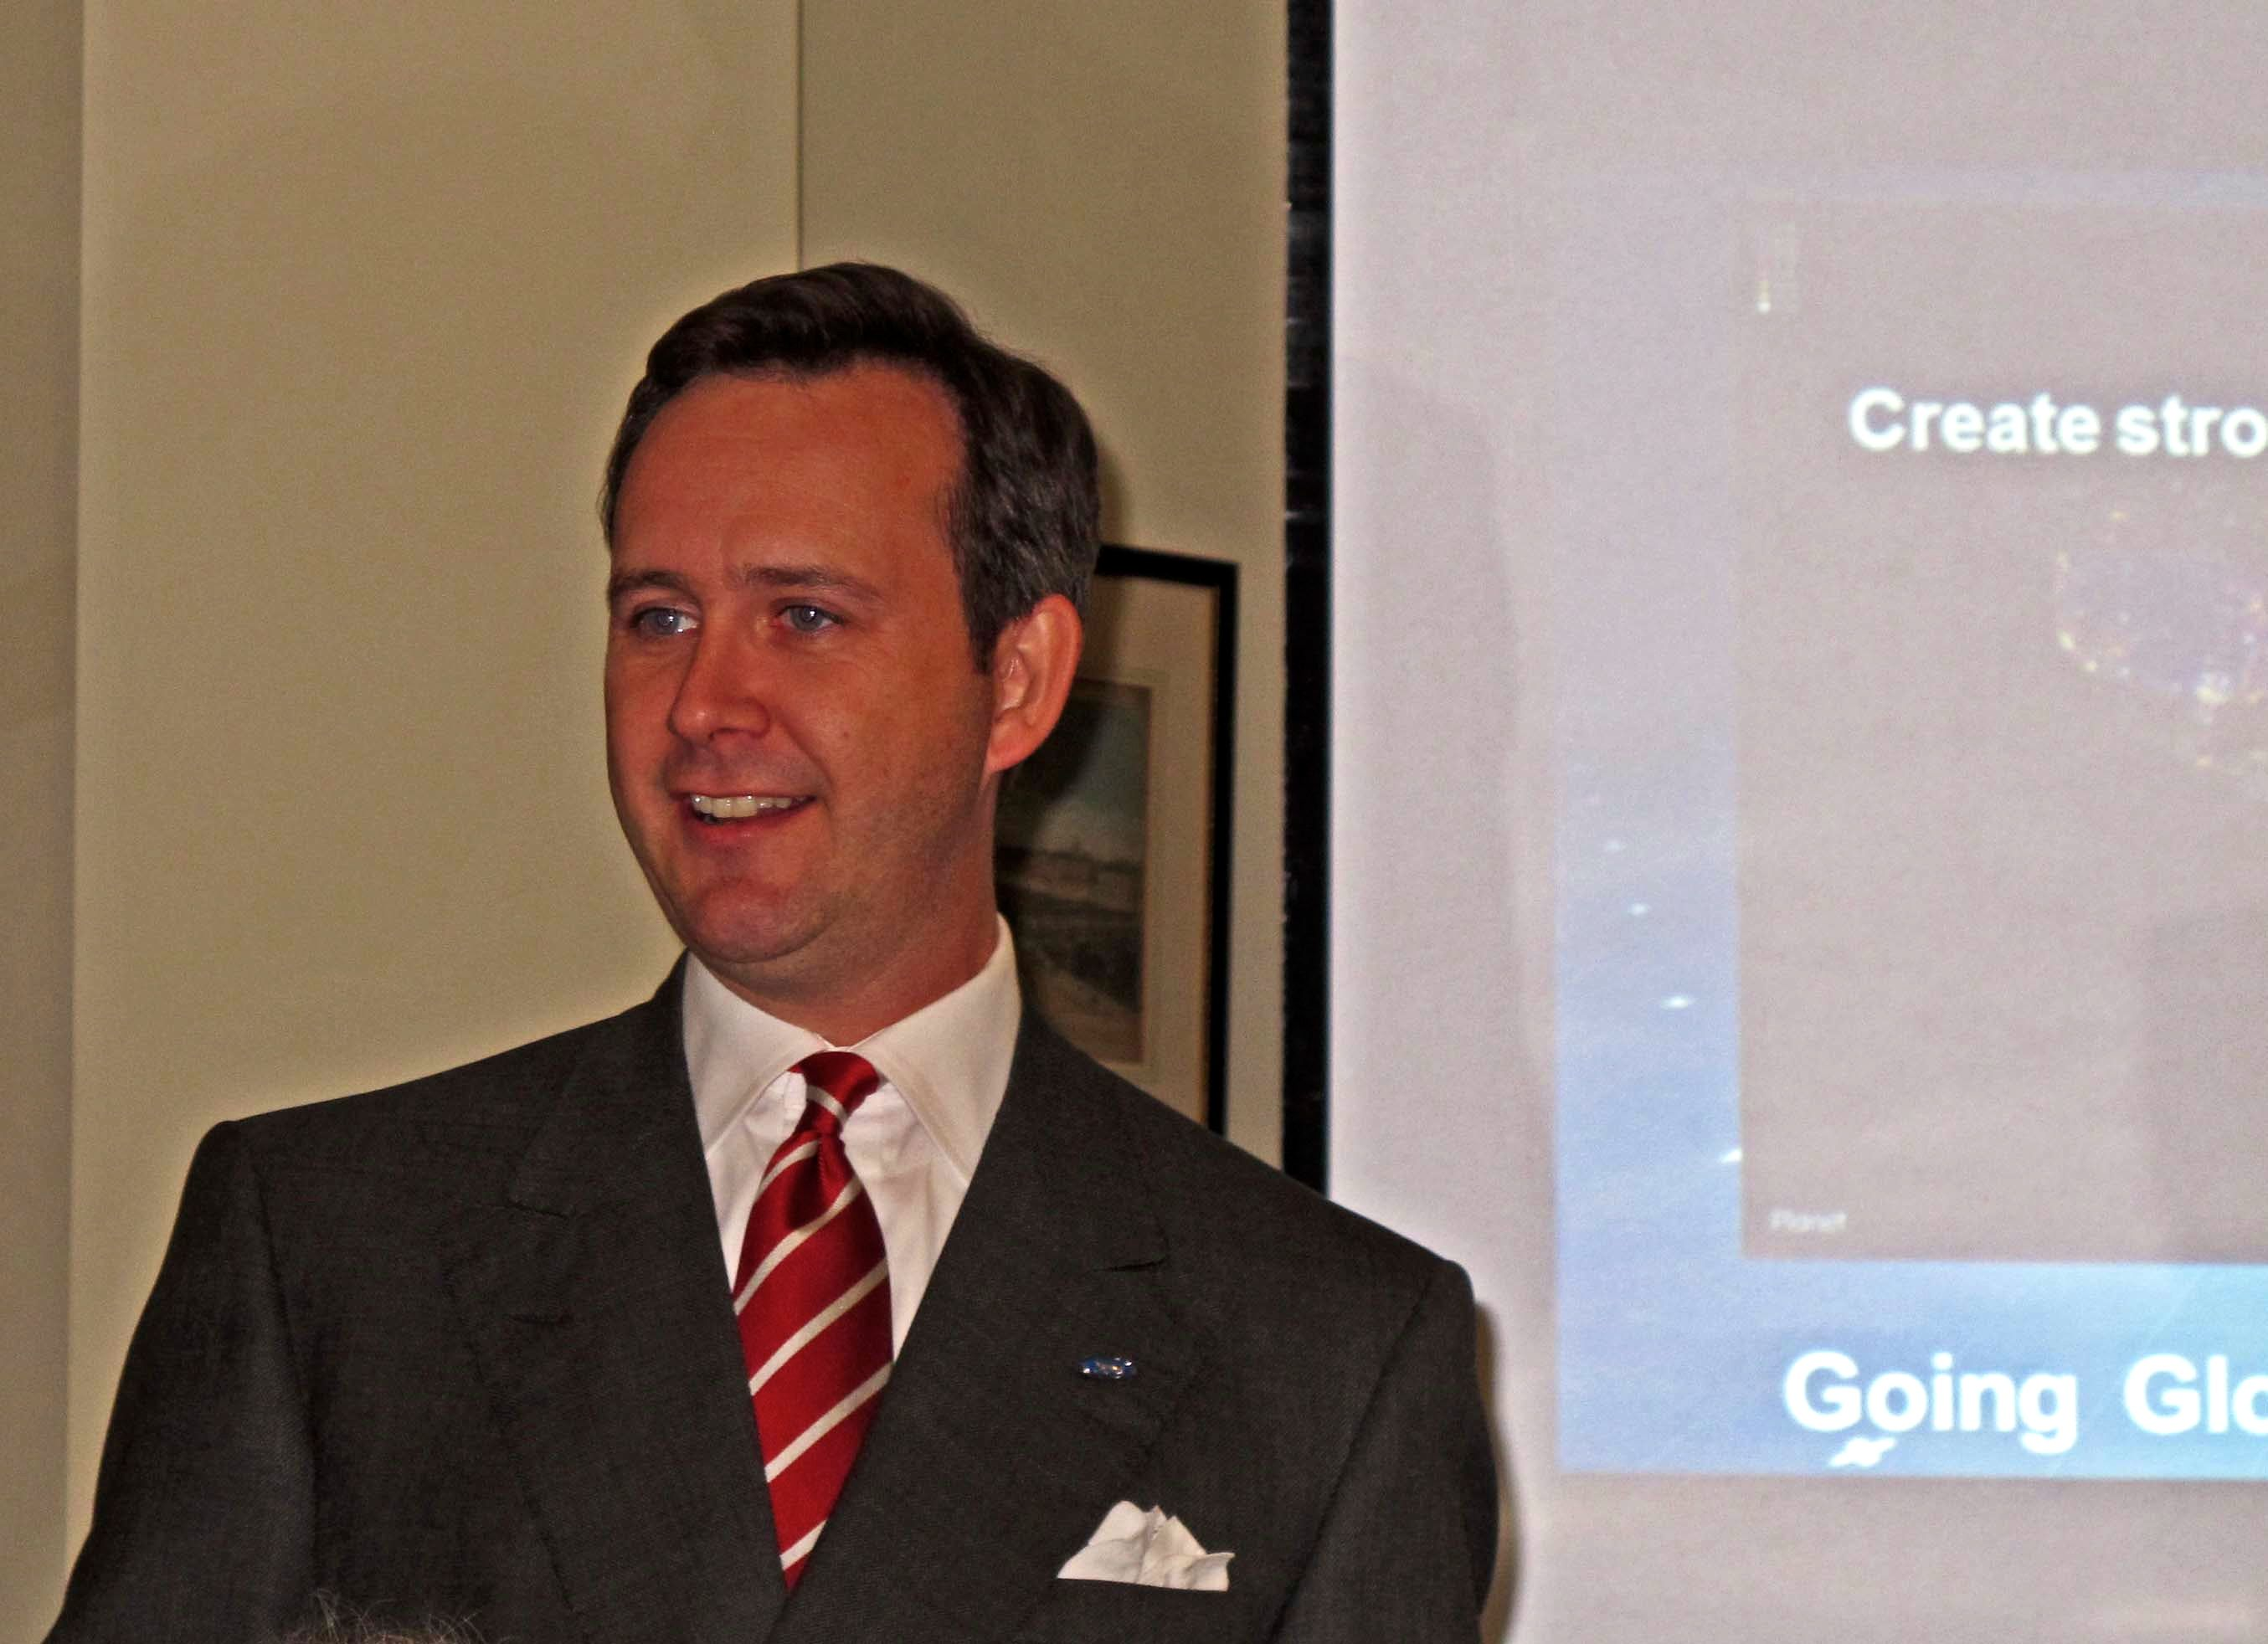 Some of us have to be circumspect in accessing SM—social media—during our workday. Not Boston native Scott Monty, Ford's global manager for digital media. His day job is to find imaginative ways to employ Facebook, blogs, podcasts, Instagram, Tumblr, YouTube and all the other planets in today's Twitterverse to promote the Ford brand.